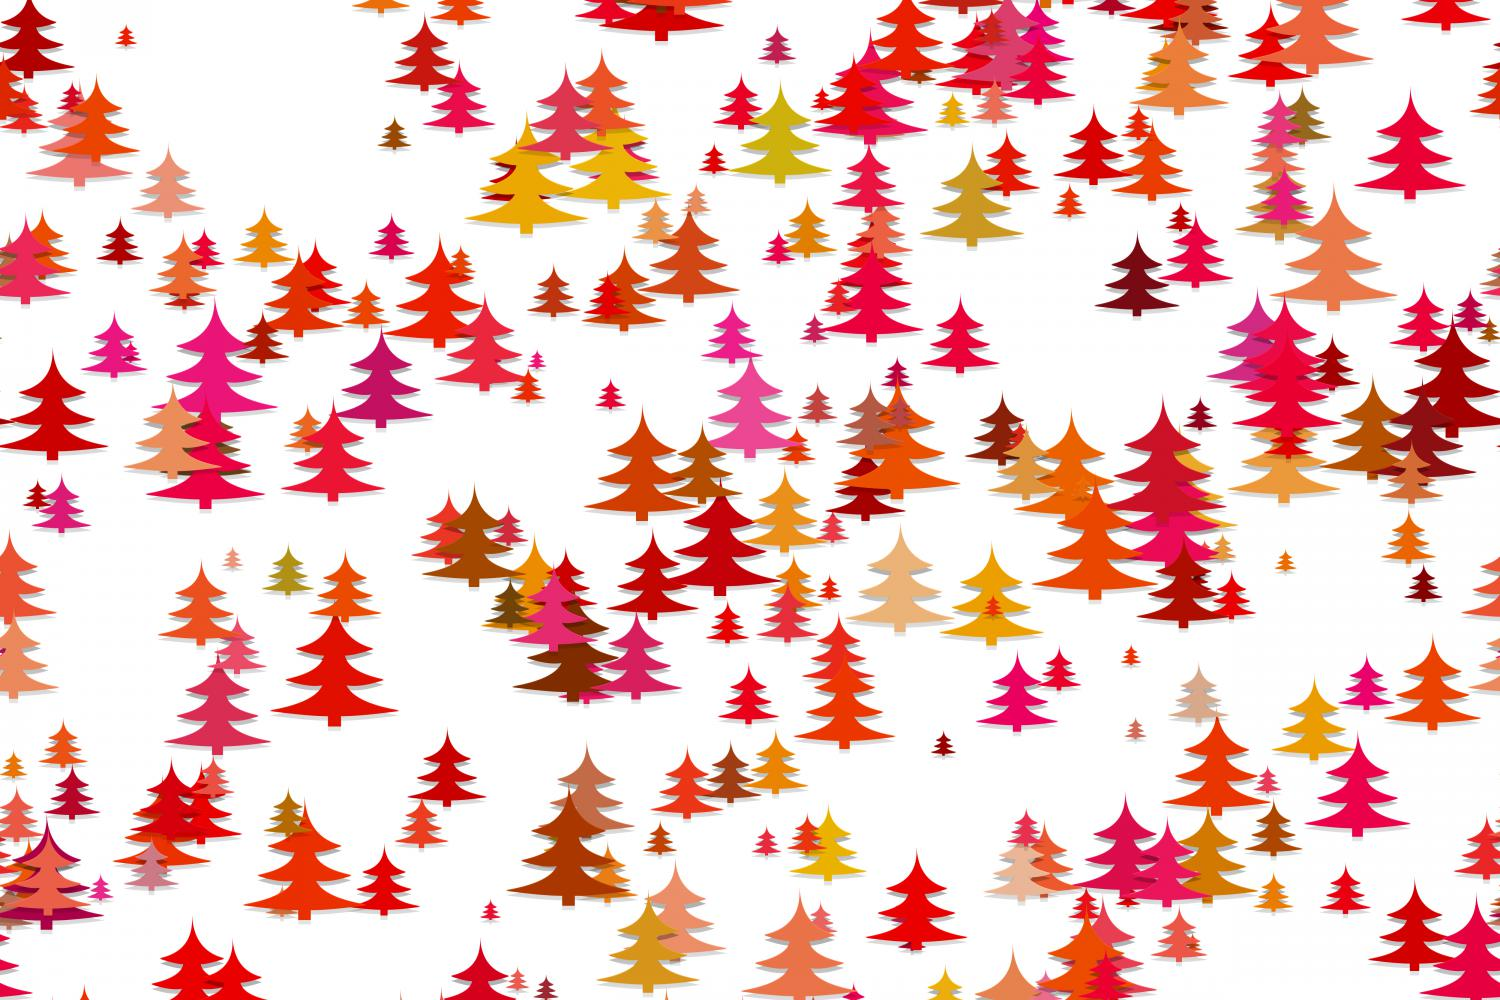 Download Free Seamless Colorful Pine Tree Background Graphic By Davidzydd for Cricut Explore, Silhouette and other cutting machines.